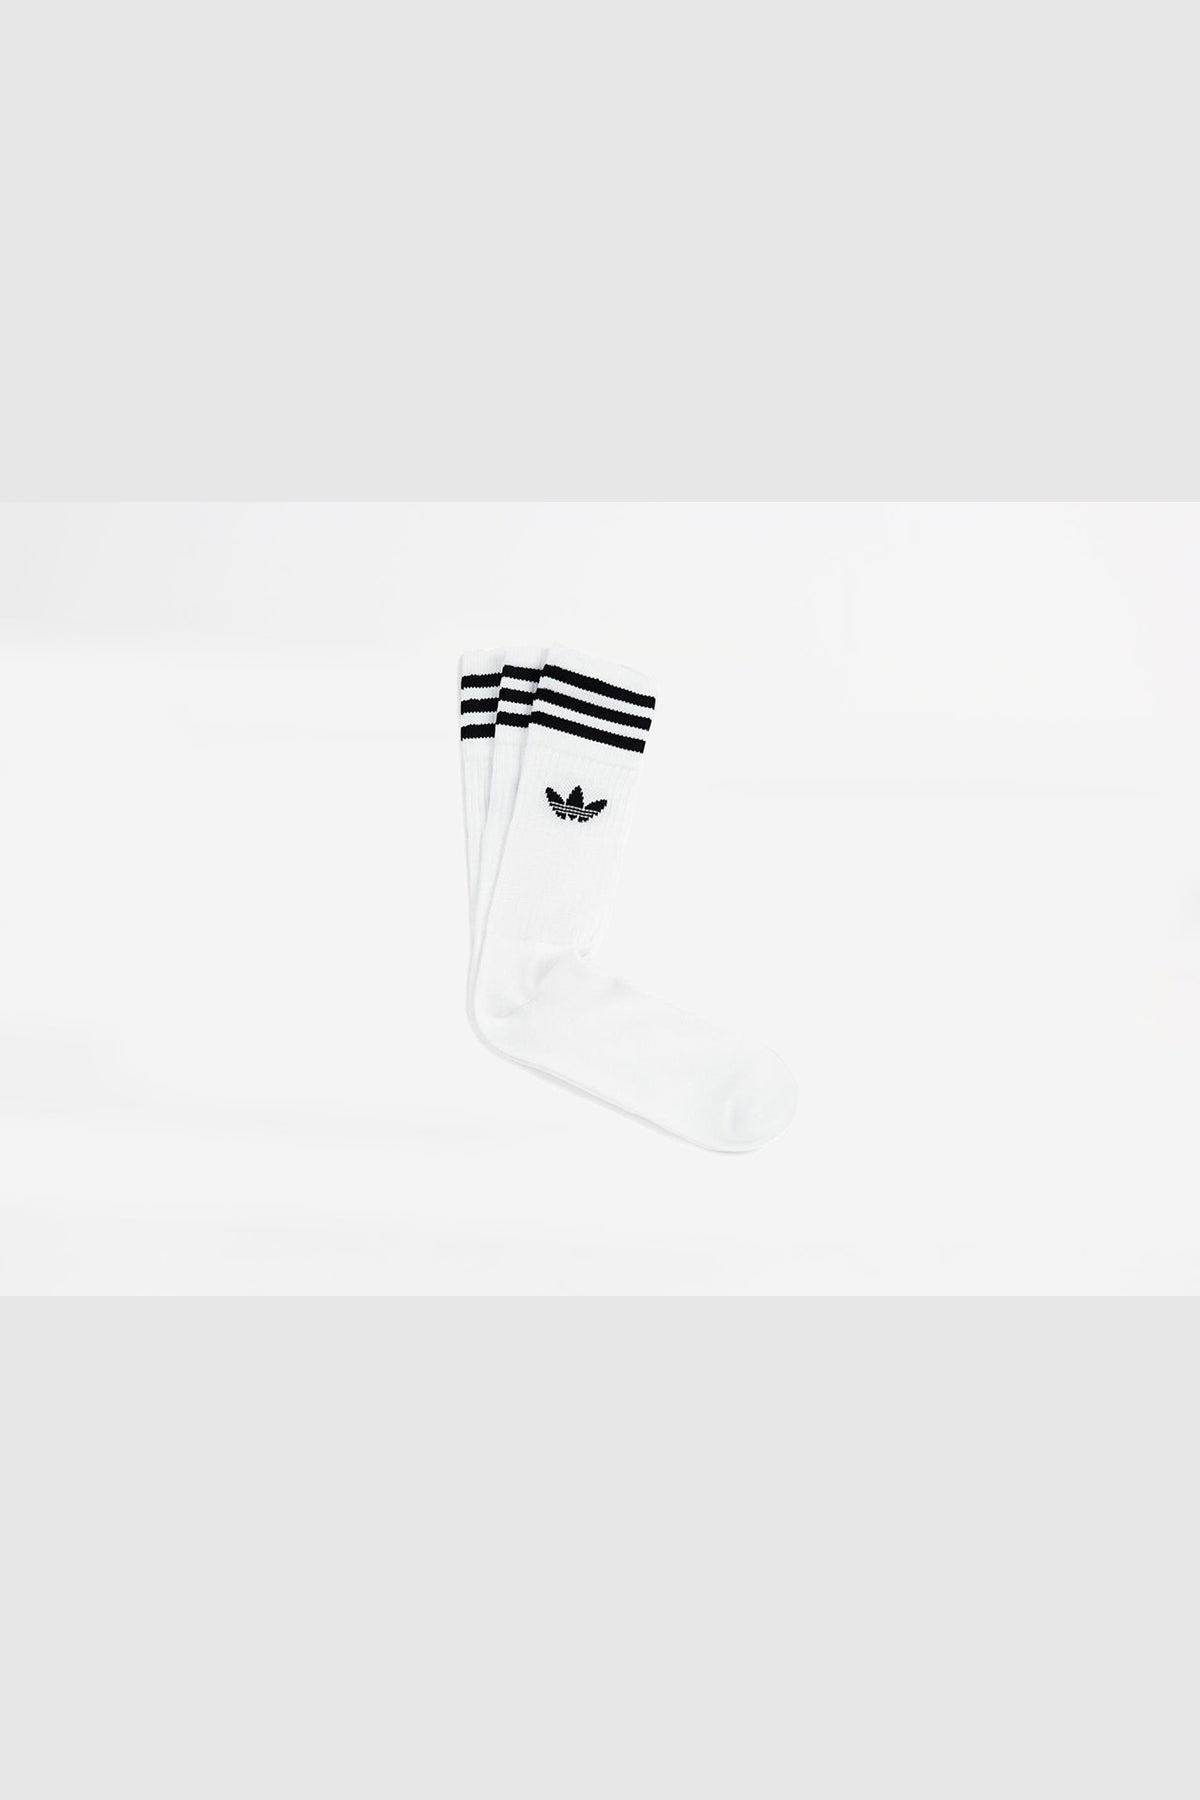 Adidas - Solid Crew Pair Sock (White/Black)S21489